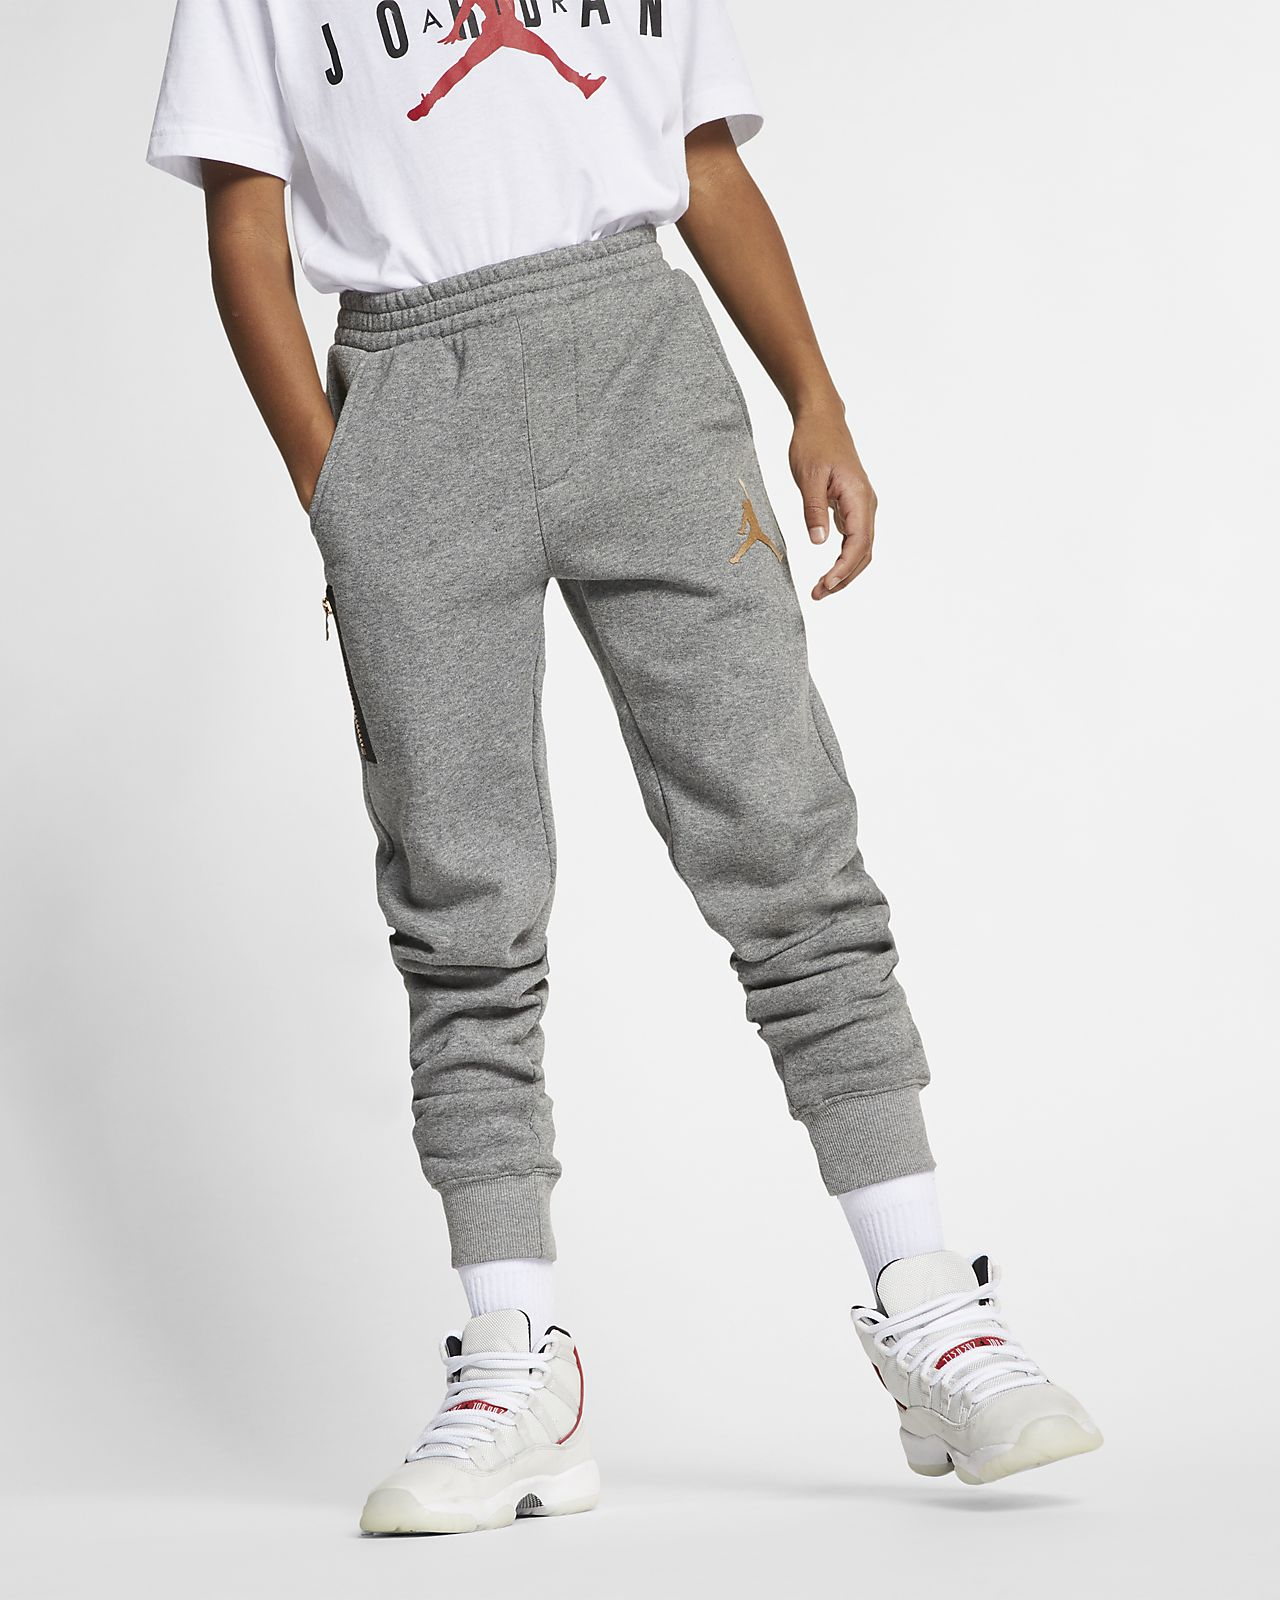 95d5bb431 Jordan Older Kids' Joggers. Nike.com GB